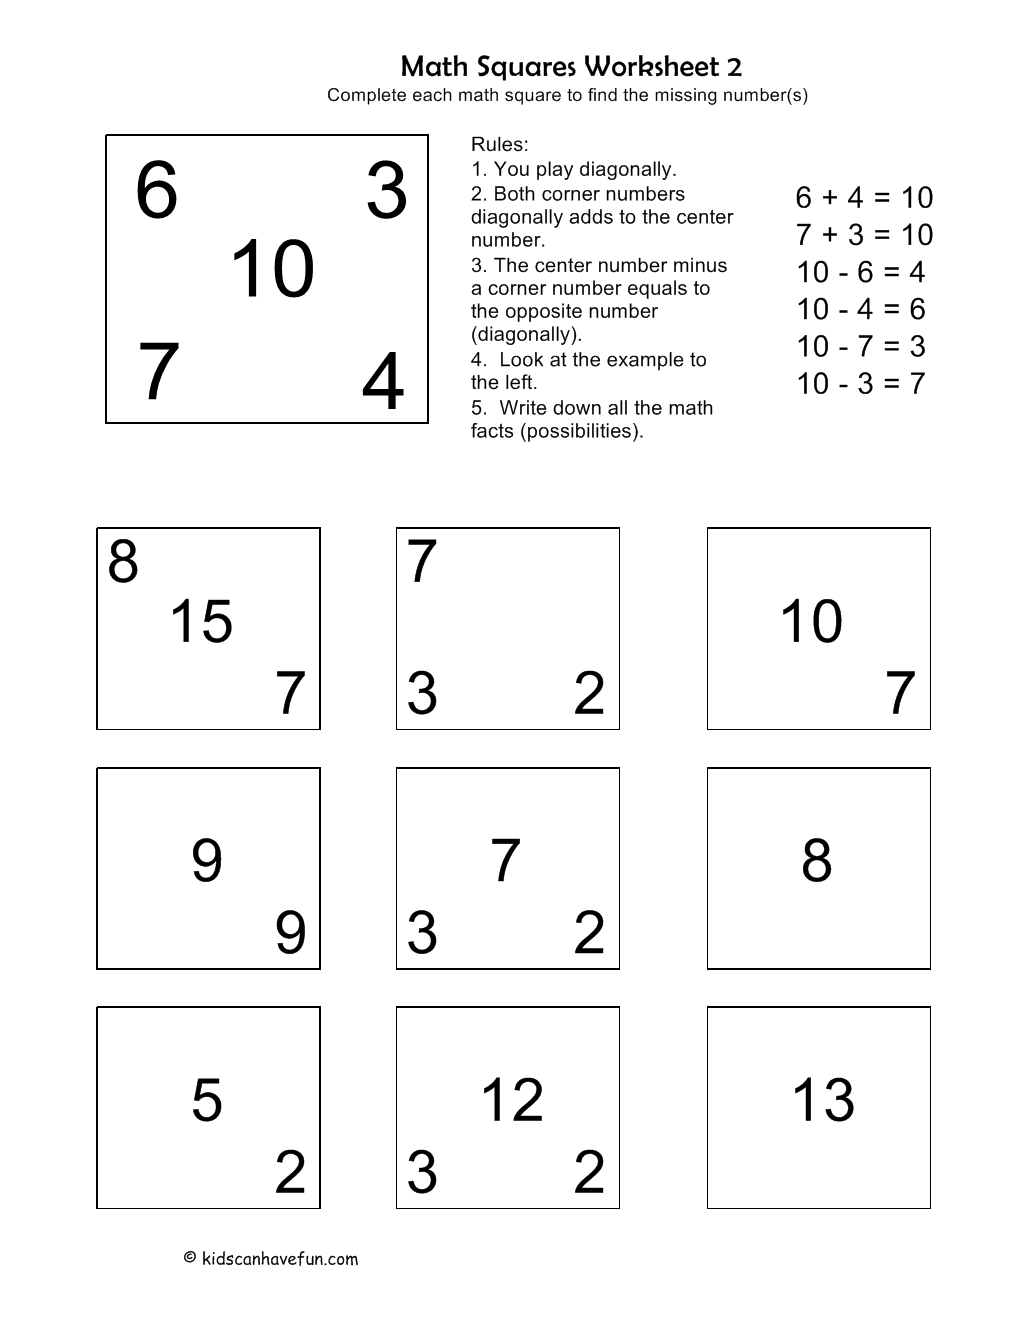 math squares worksheet complete each math square to find the missing numbers http www. Black Bedroom Furniture Sets. Home Design Ideas